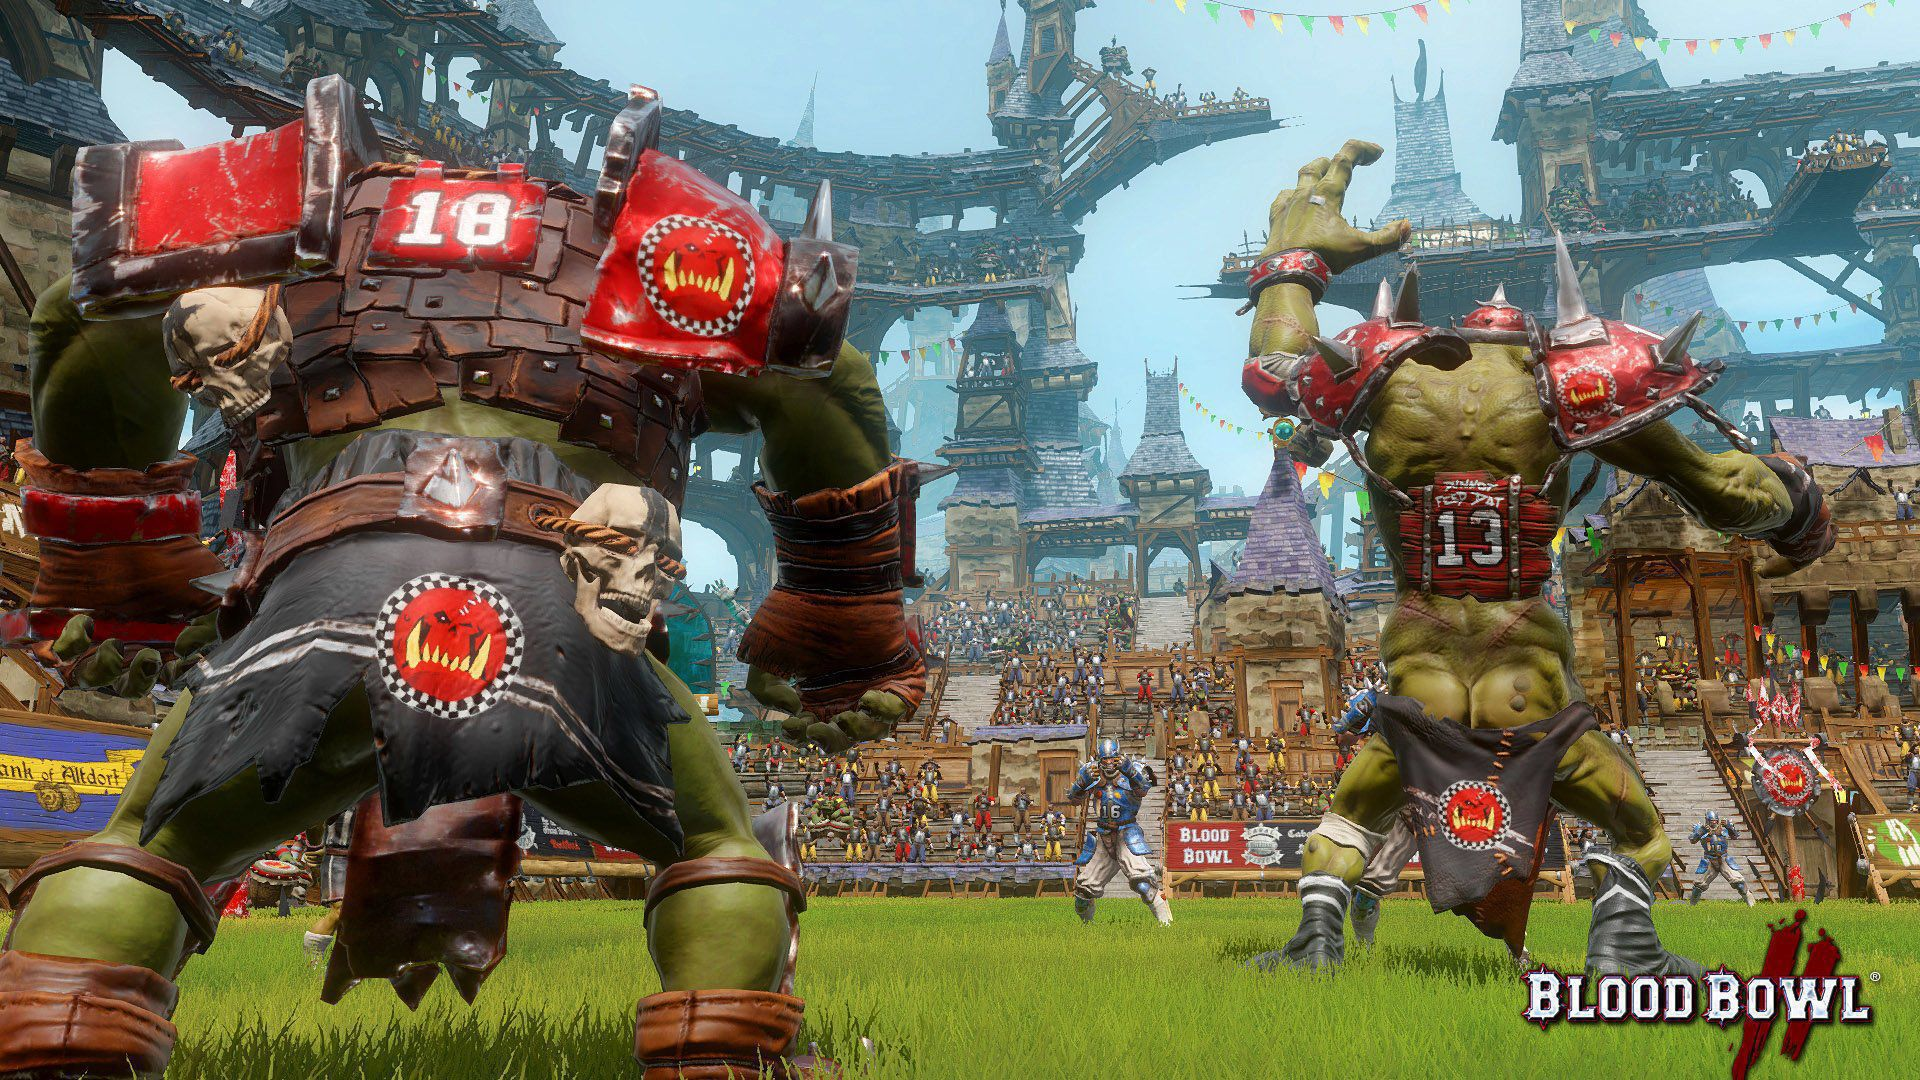 Blood Bowl HD Desktop